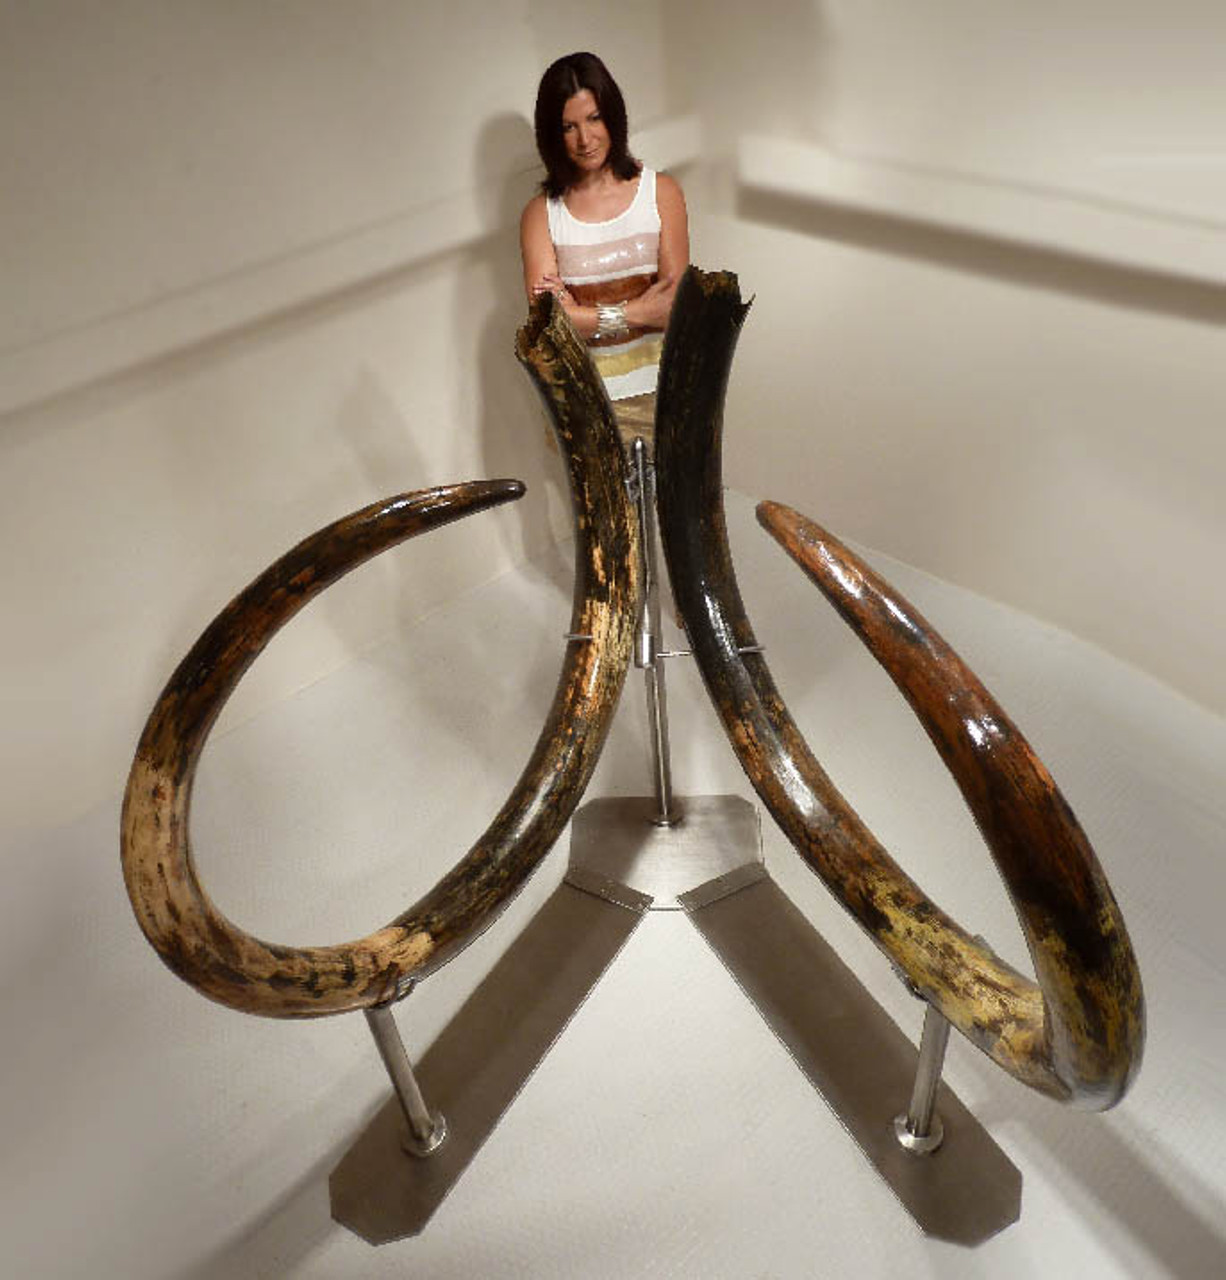 INVESTMENT-GRADE  LARGEST 11.5 FOOT PAIR OF WOOLLY MAMMOTH TUSKS FROM EUROPE'S FINAL ICE AGE *MTX001